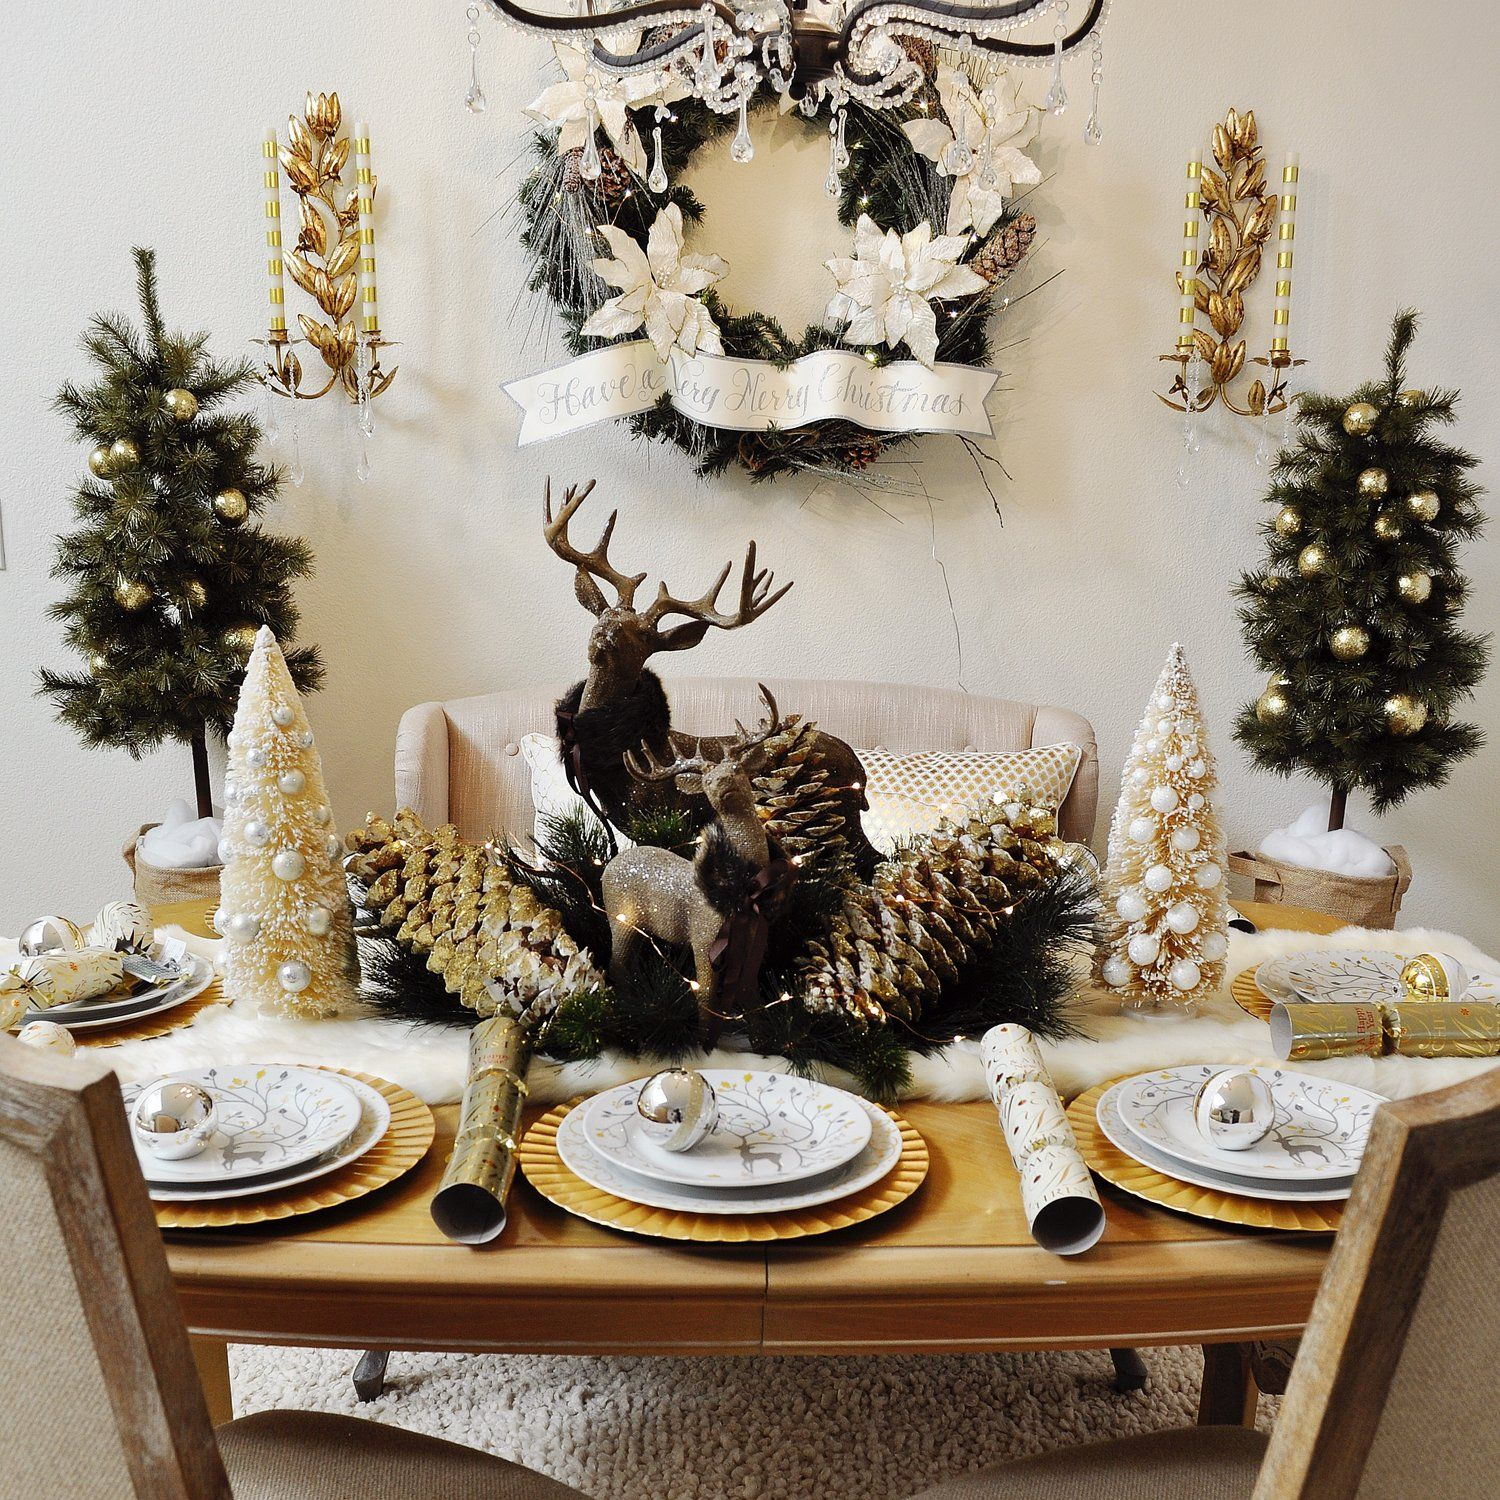 Home For The Holidays Blog Tour 2 Ladies A Chair Style 2 Ladies A Chair Holiday Tablescapes Christmas Table Centerpieces Christmas Table Settings